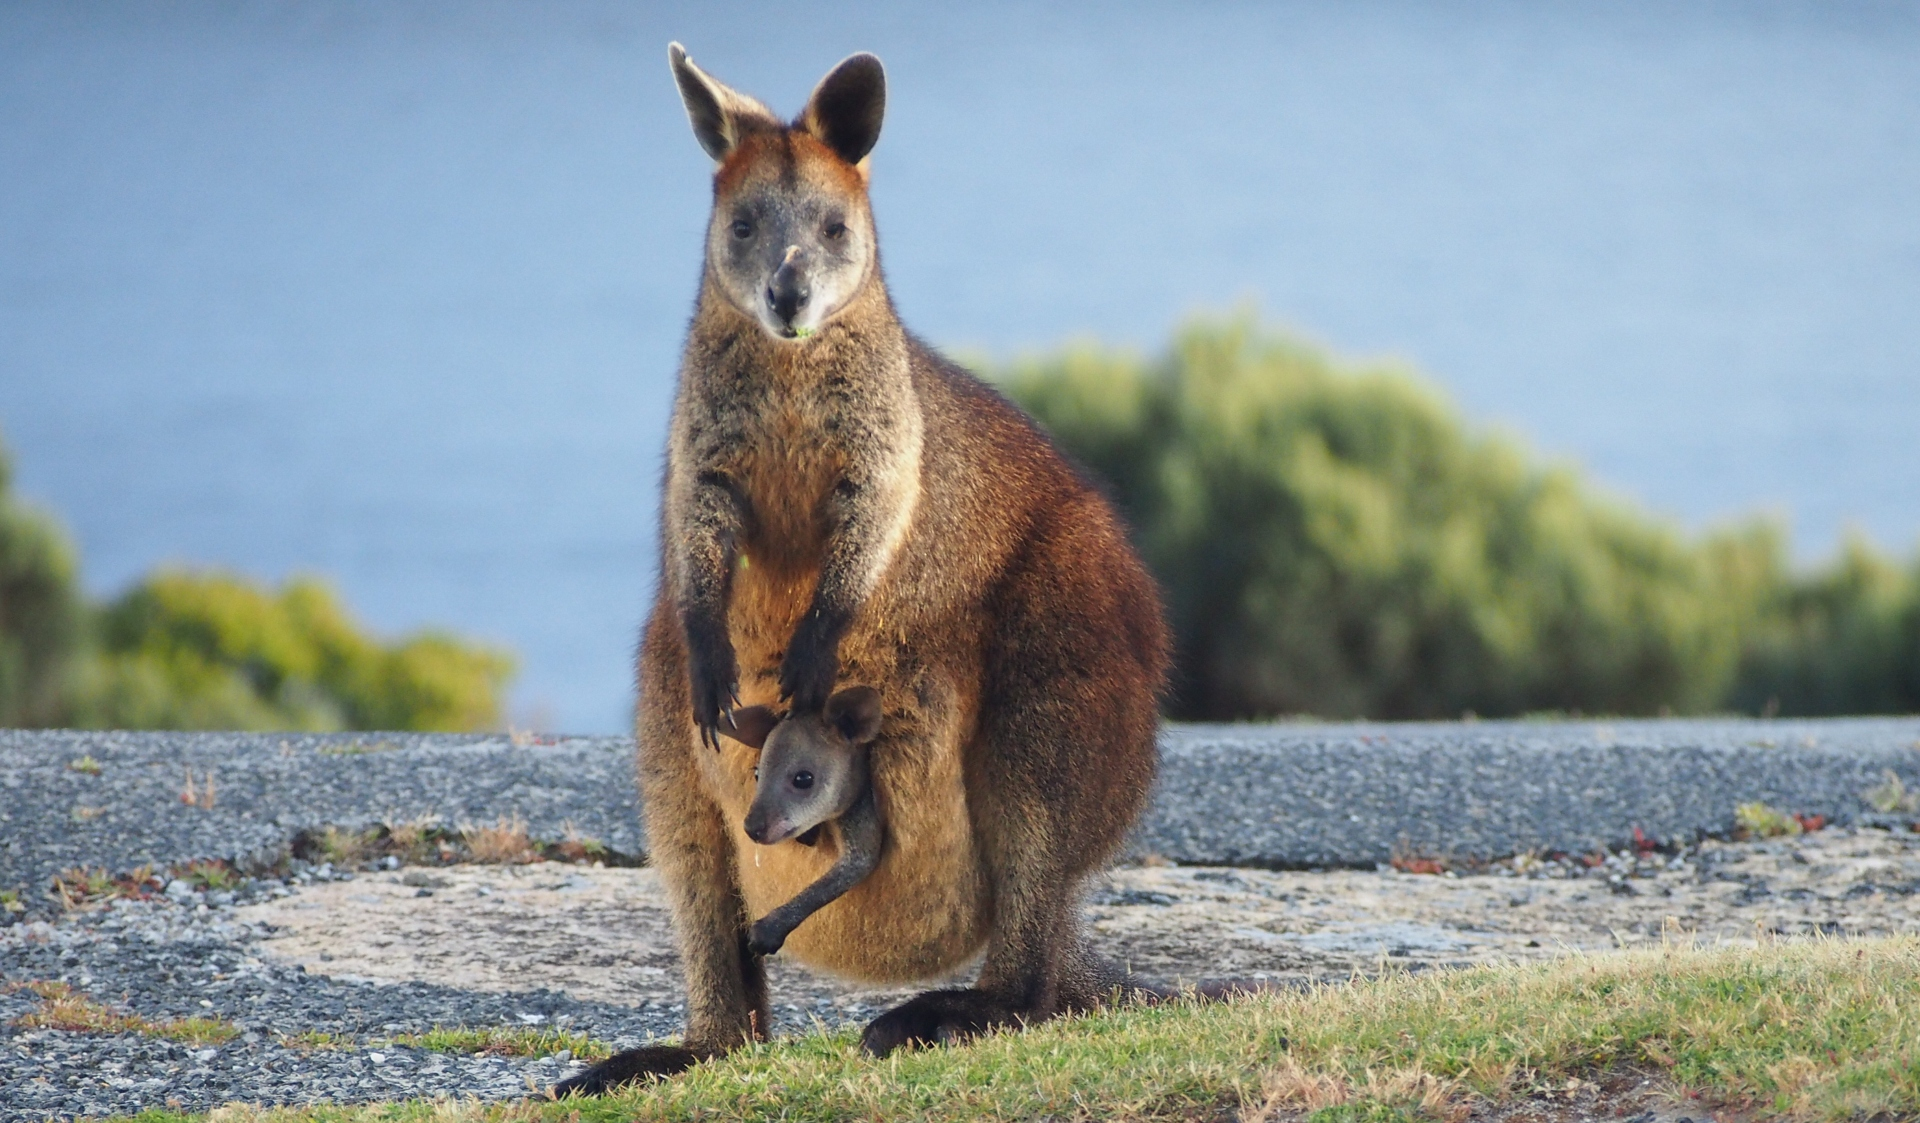 A mother and joey wallaby on a rock surface with the ocean in the background at Wilsons Promontory National Park.